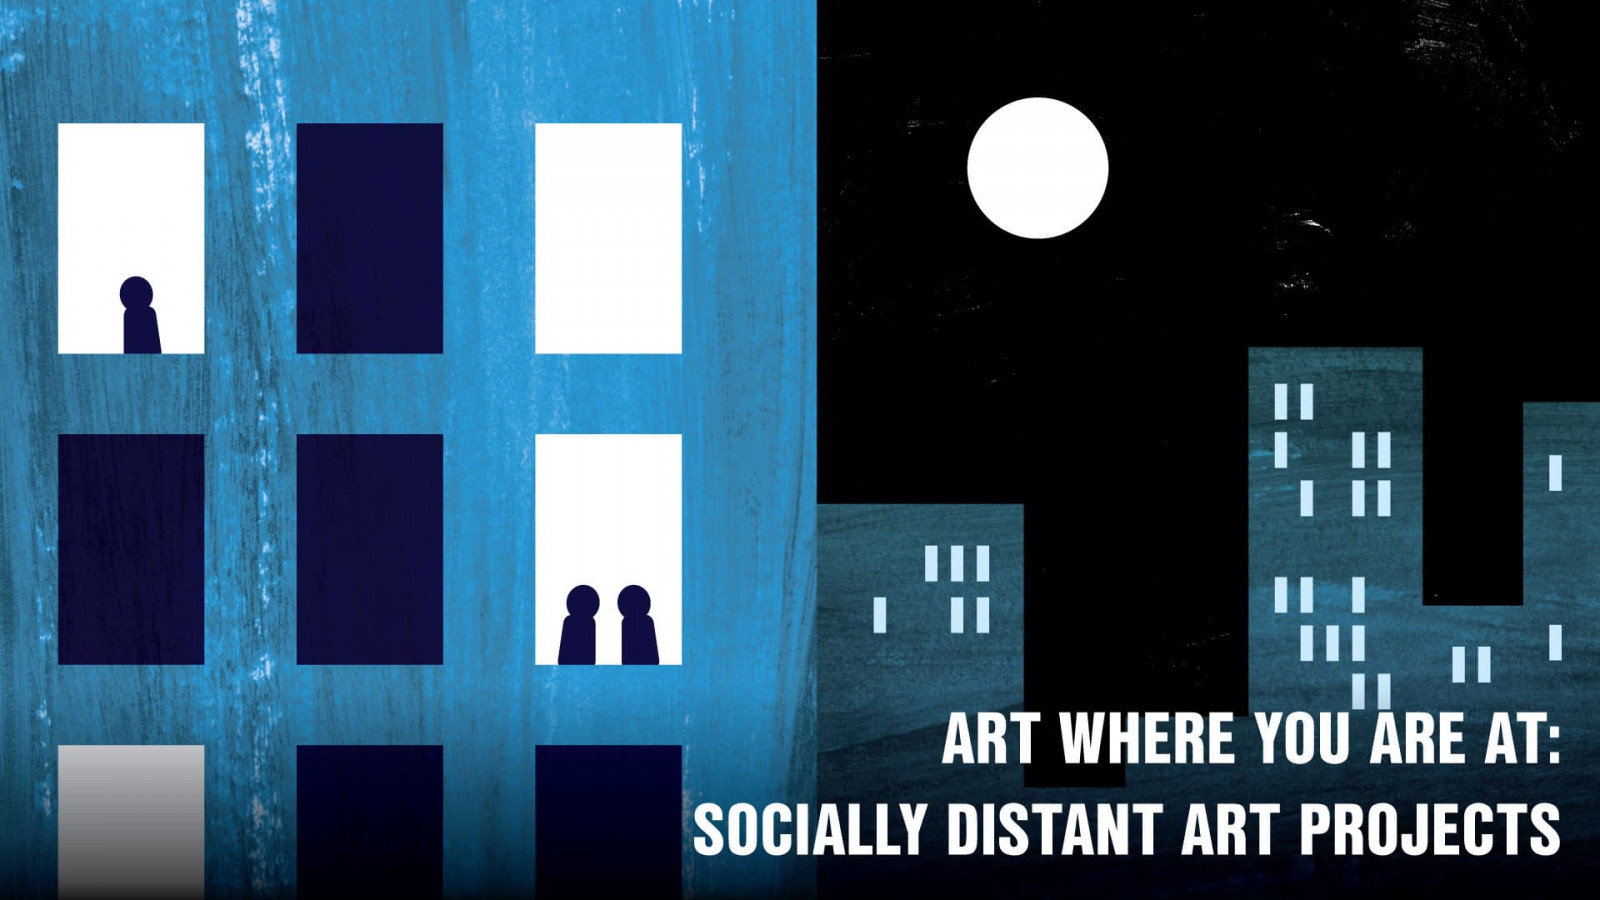 socially distant art project